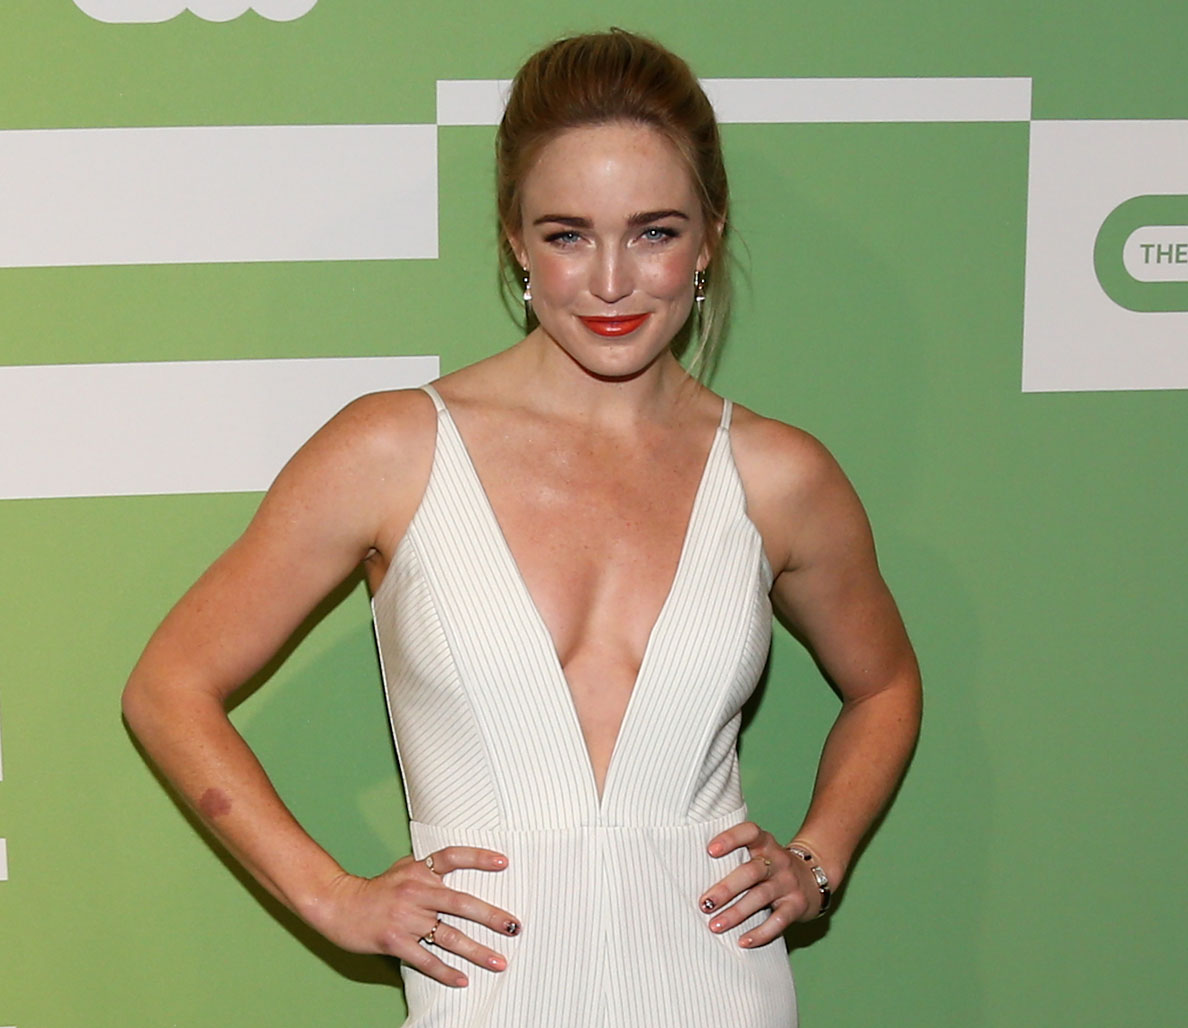 caity lotz is the